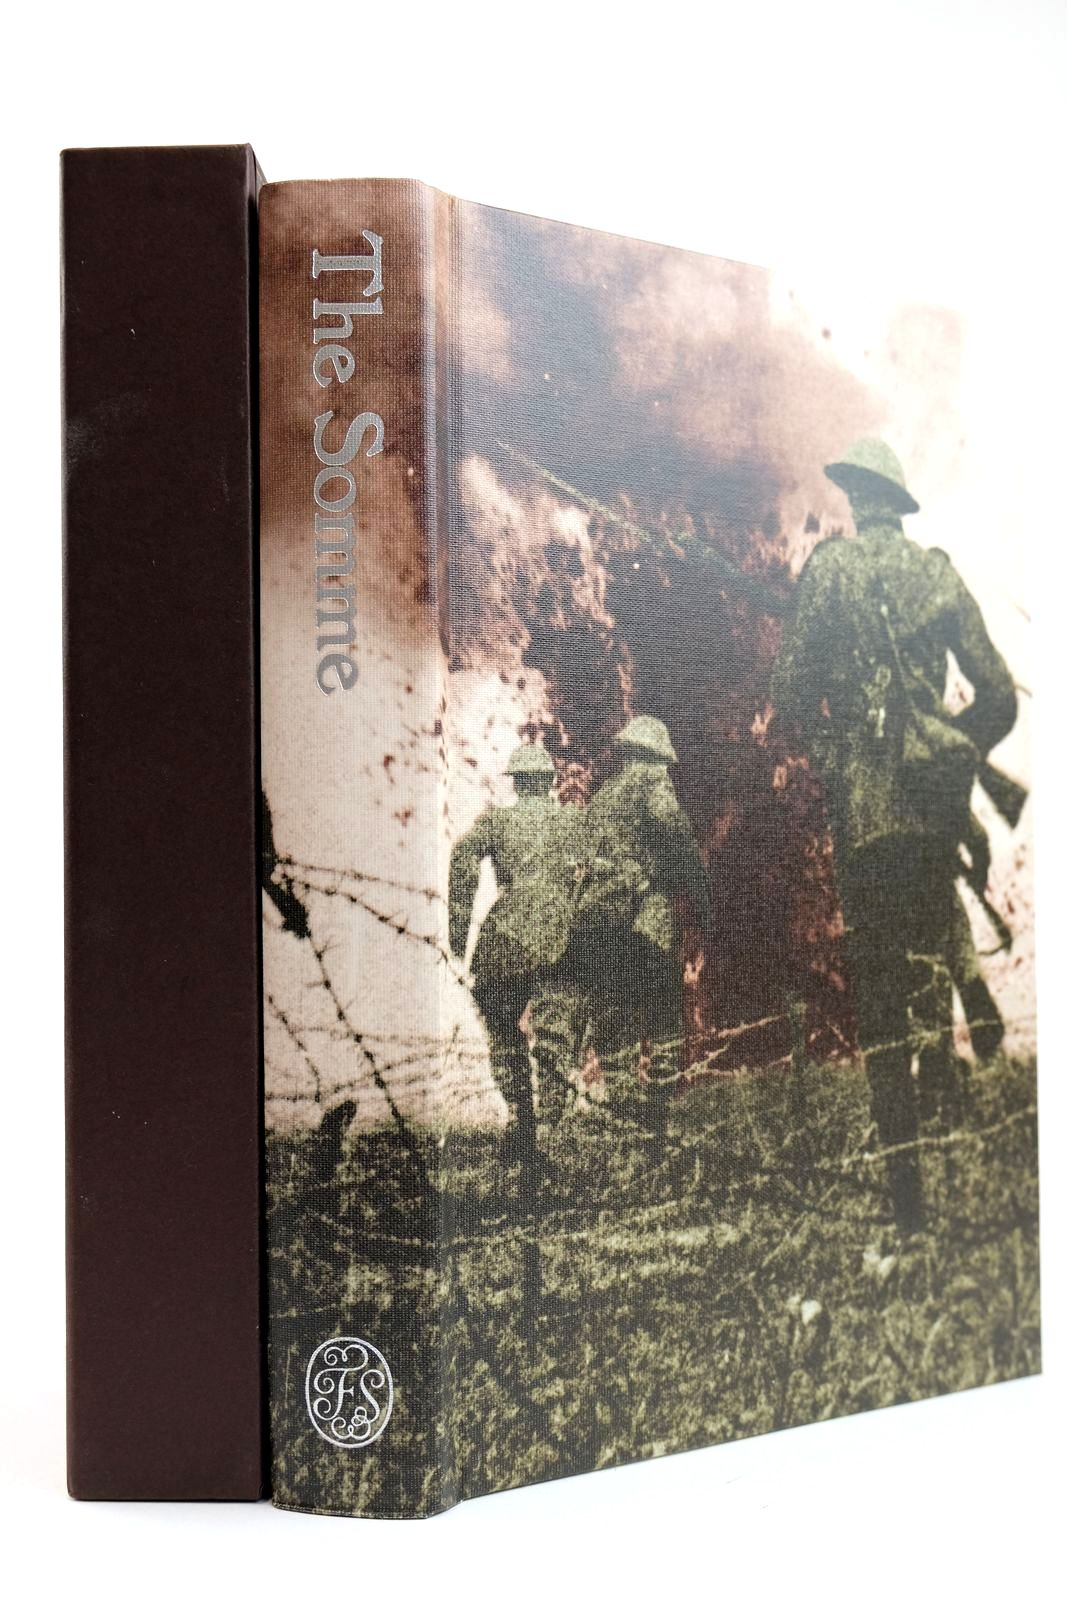 Photo of THE SOMME AN EYEWITNESS HISTORY written by Foley, Robert T. McCartney, Helen published by Folio Society (STOCK CODE: 2132105)  for sale by Stella & Rose's Books